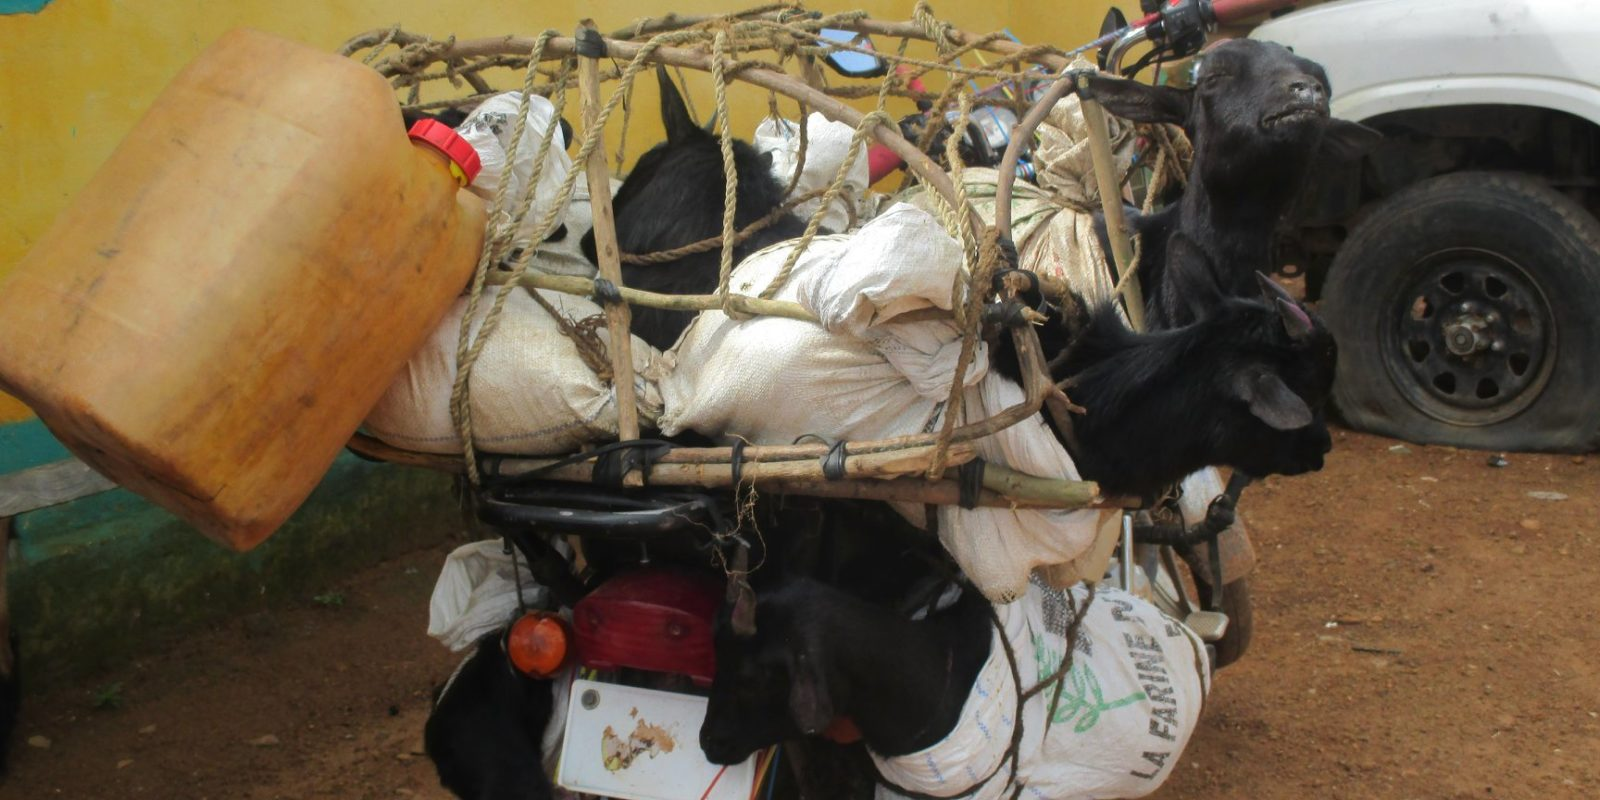 Many goats in Liberia suffer poor welfare during transport